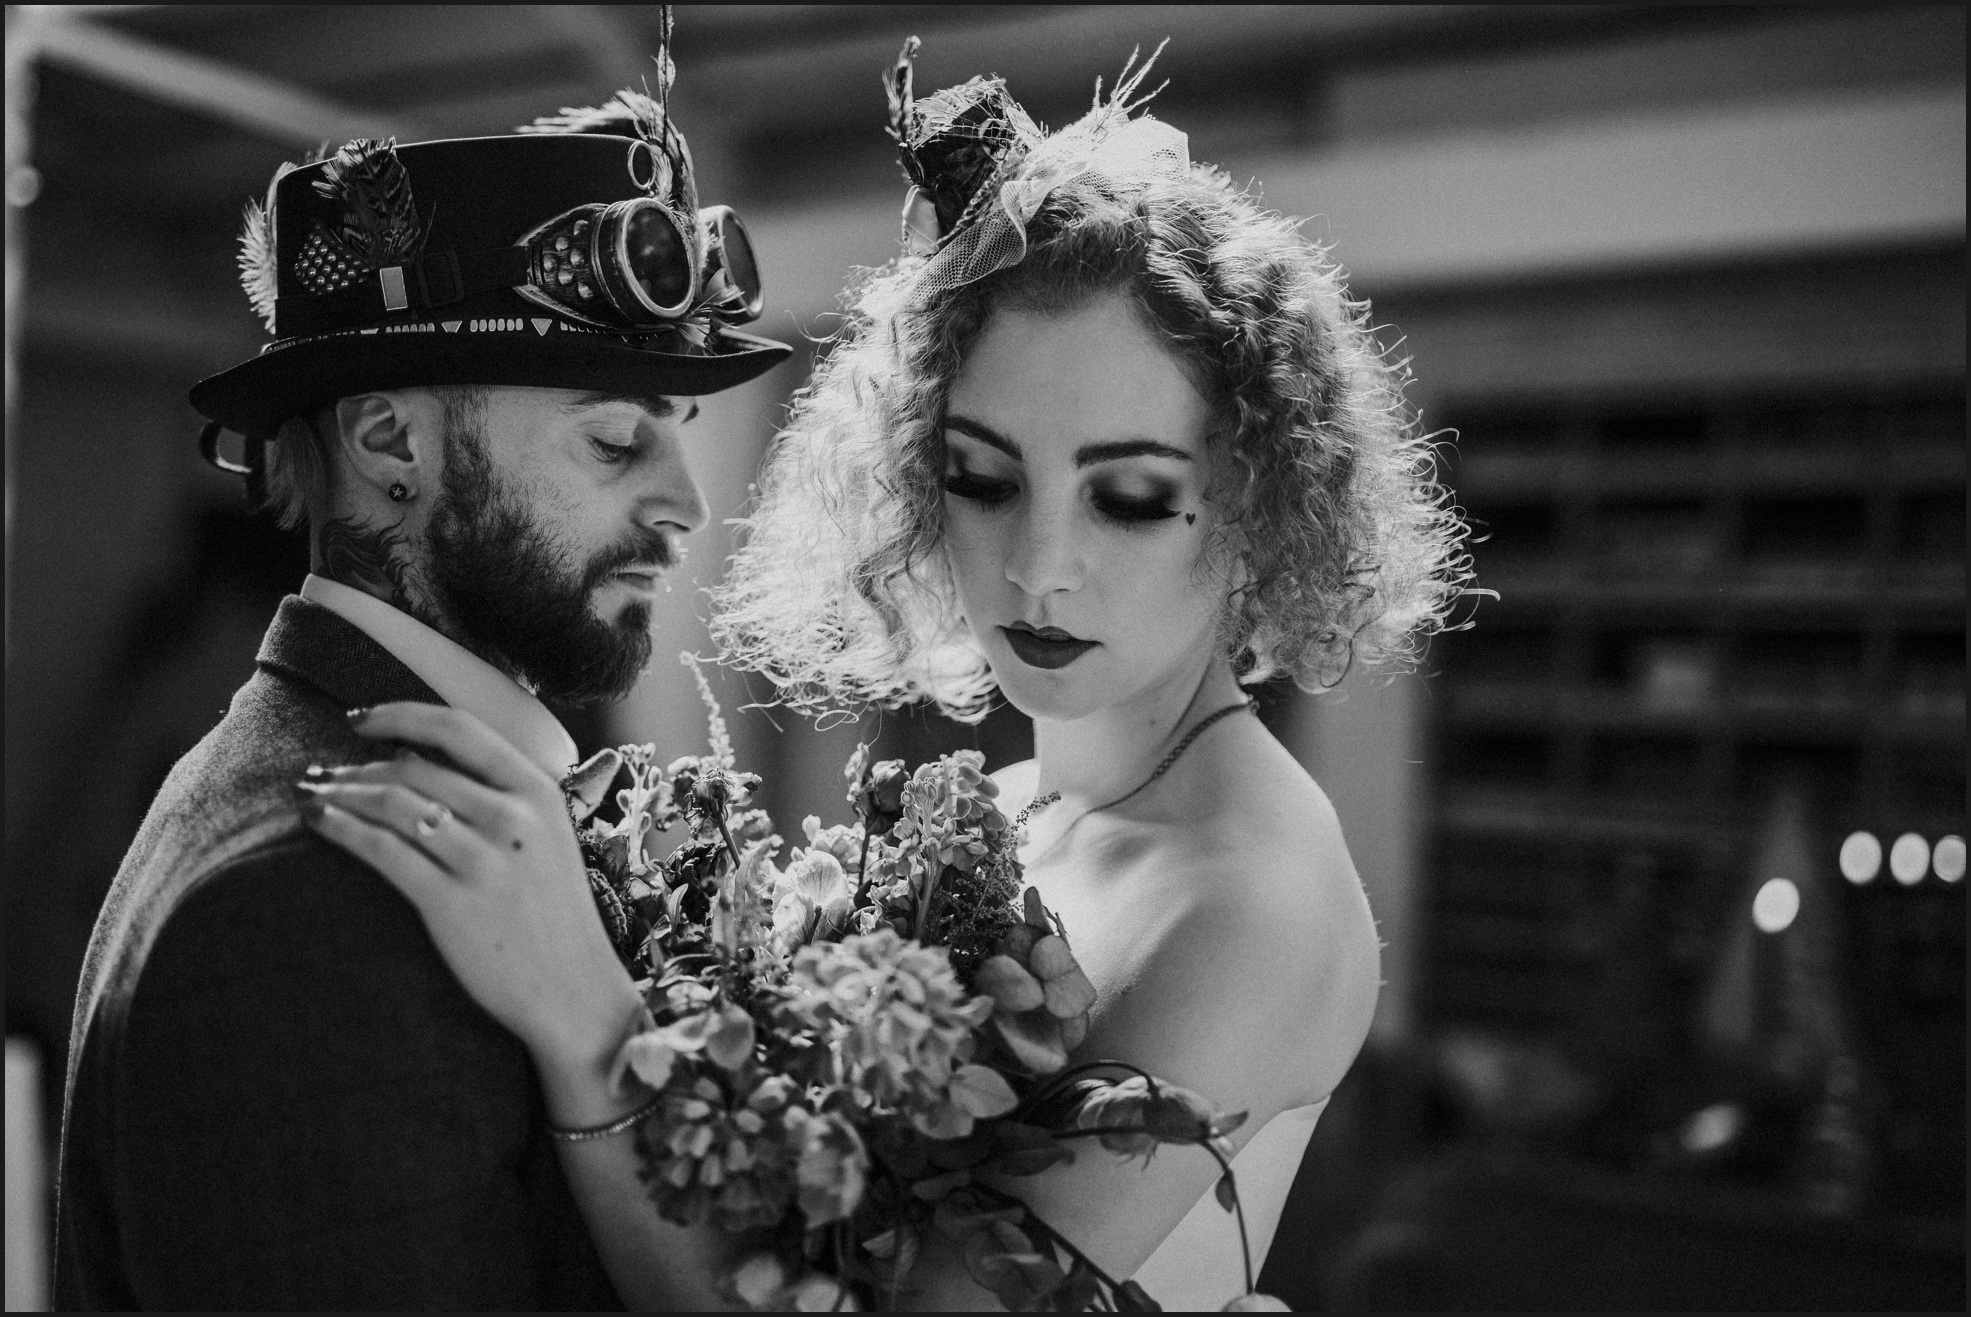 bride, groom, steampunk wedding, alternative wedding photographer, London, intimate, black and white